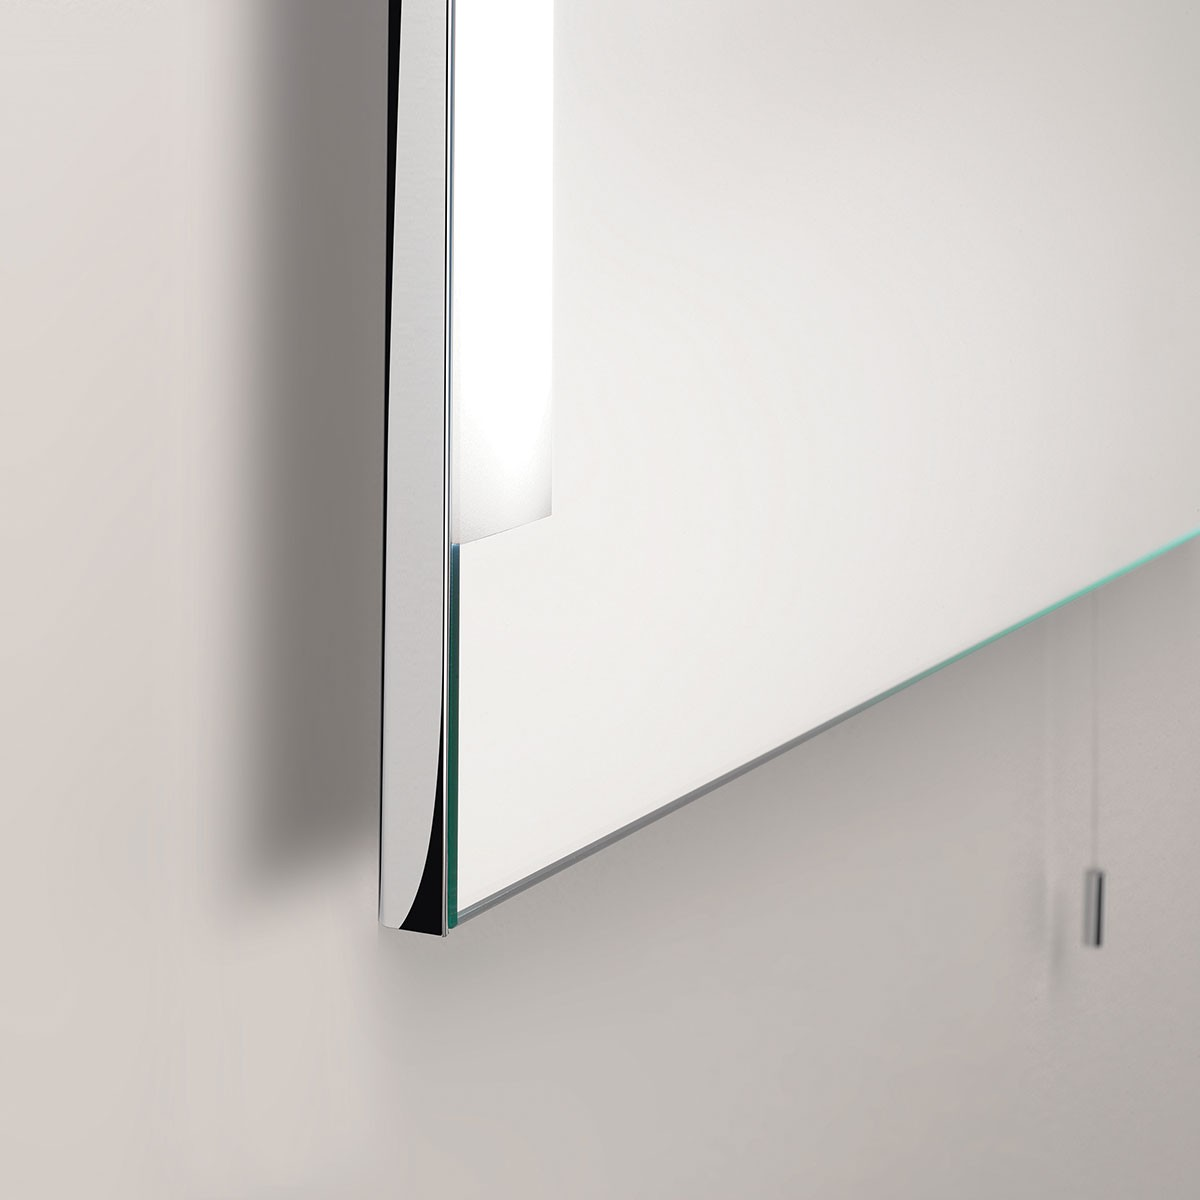 Astro imola 800 polished chrome bathroom mirror light at uk electrical supplies Polished chrome bathroom mirrors